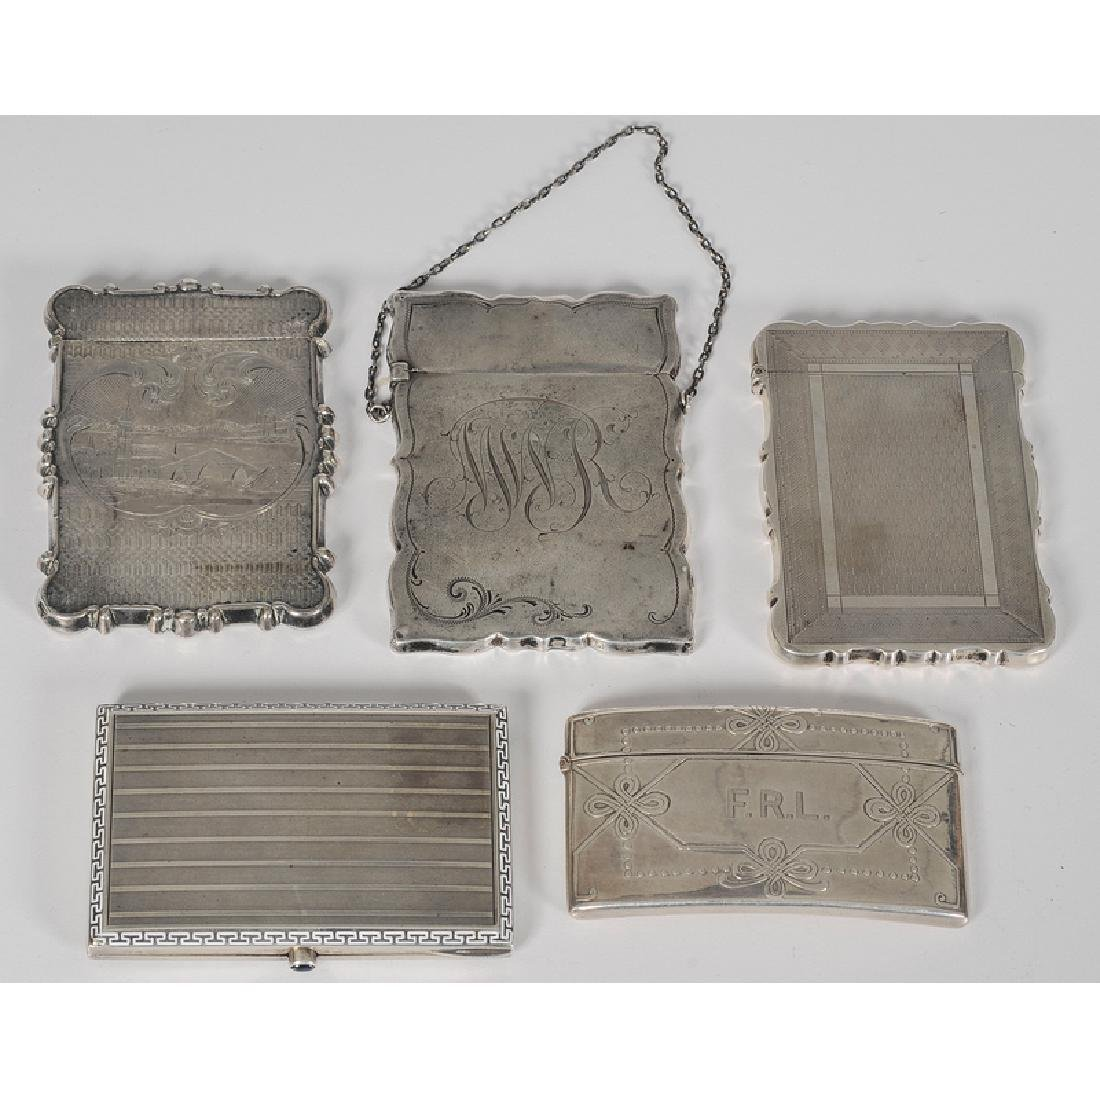 Tiffany and Other Silver Calling Card Cases